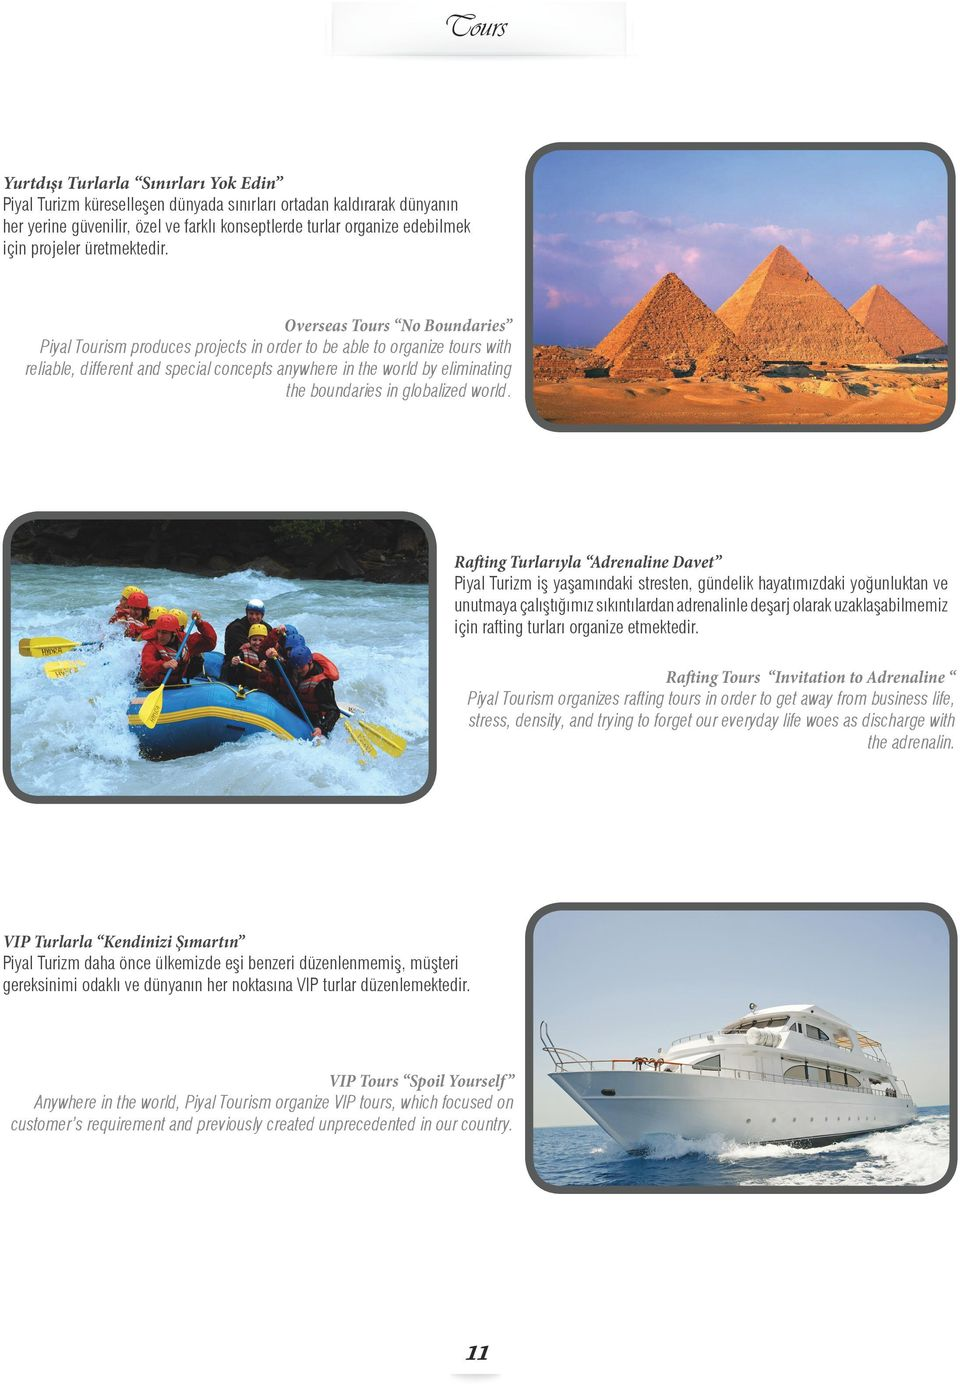 Overseas Tours No Boundaries Piyal Tourism produces projects in order to be able to organize tours with reliable, different and special concepts anywhere in the world by eliminating the boundaries in